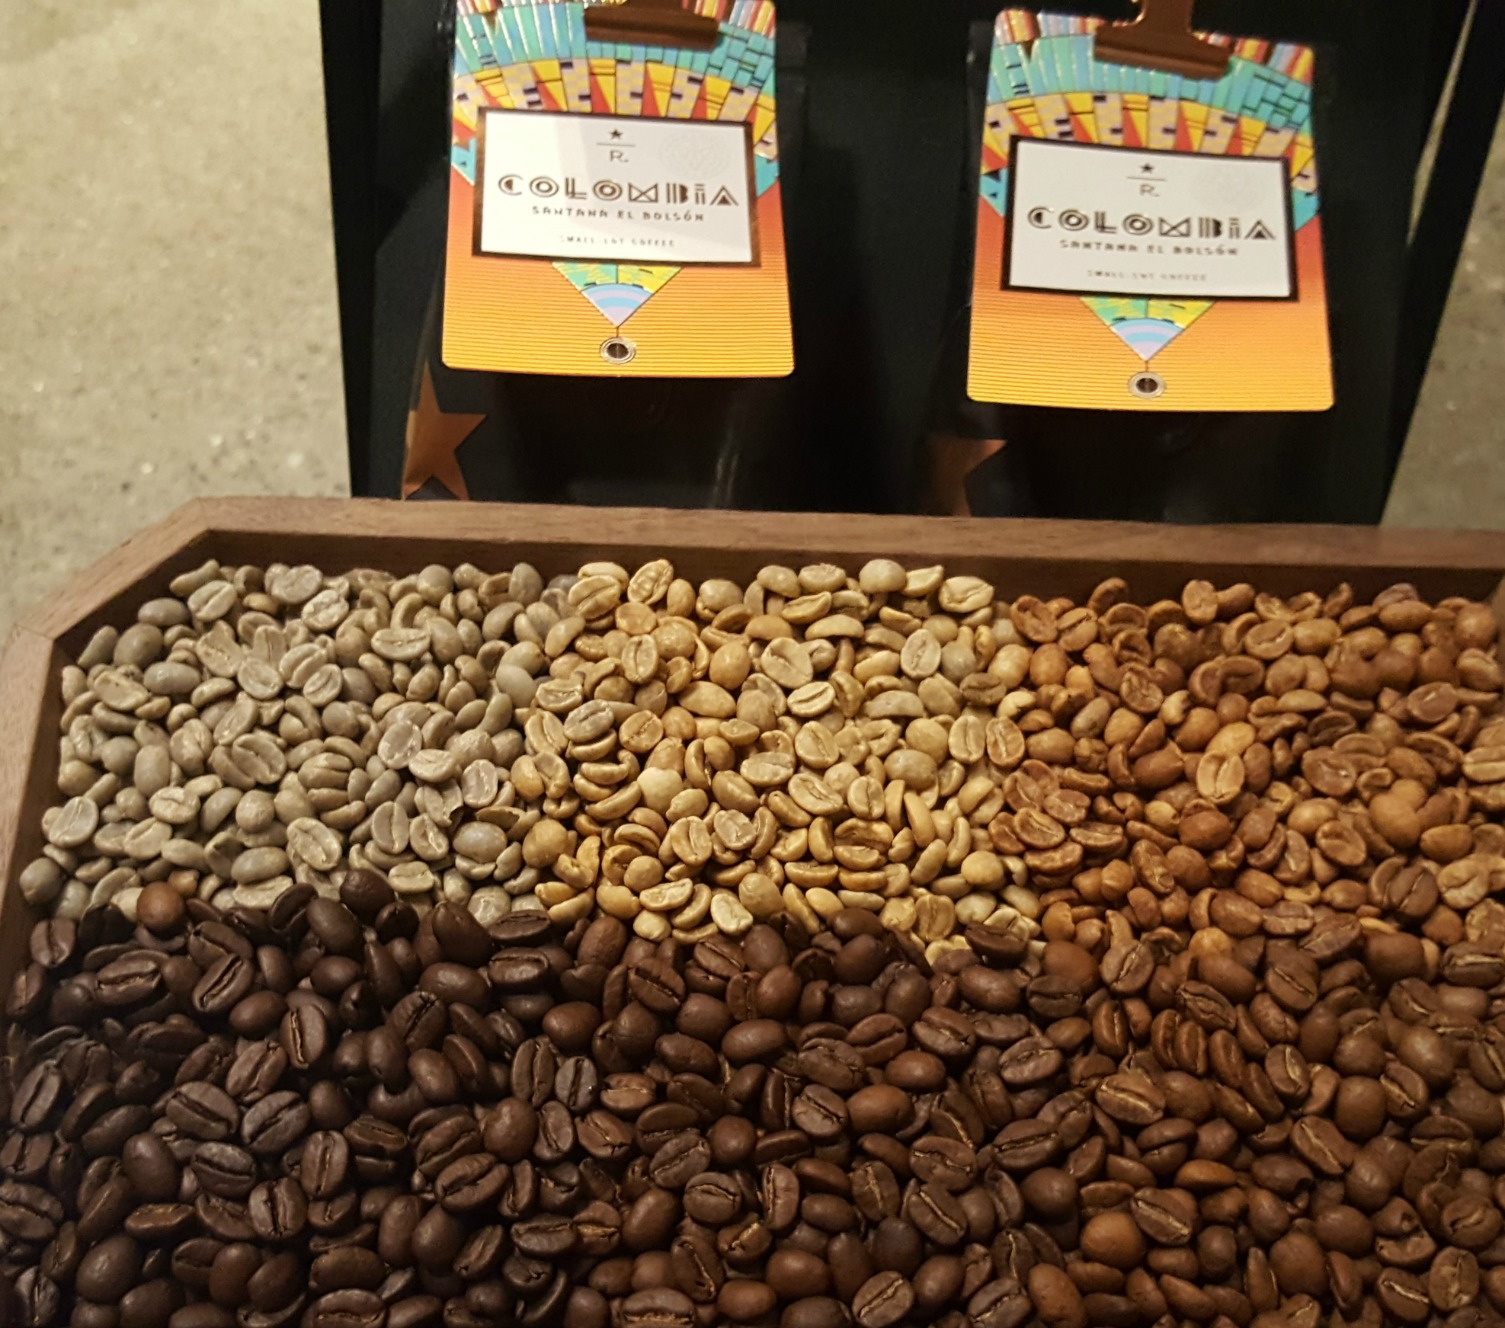 1 - 1 - 20160518_204735 colombia santana el bolson - green coffee to fully roasted.jpg